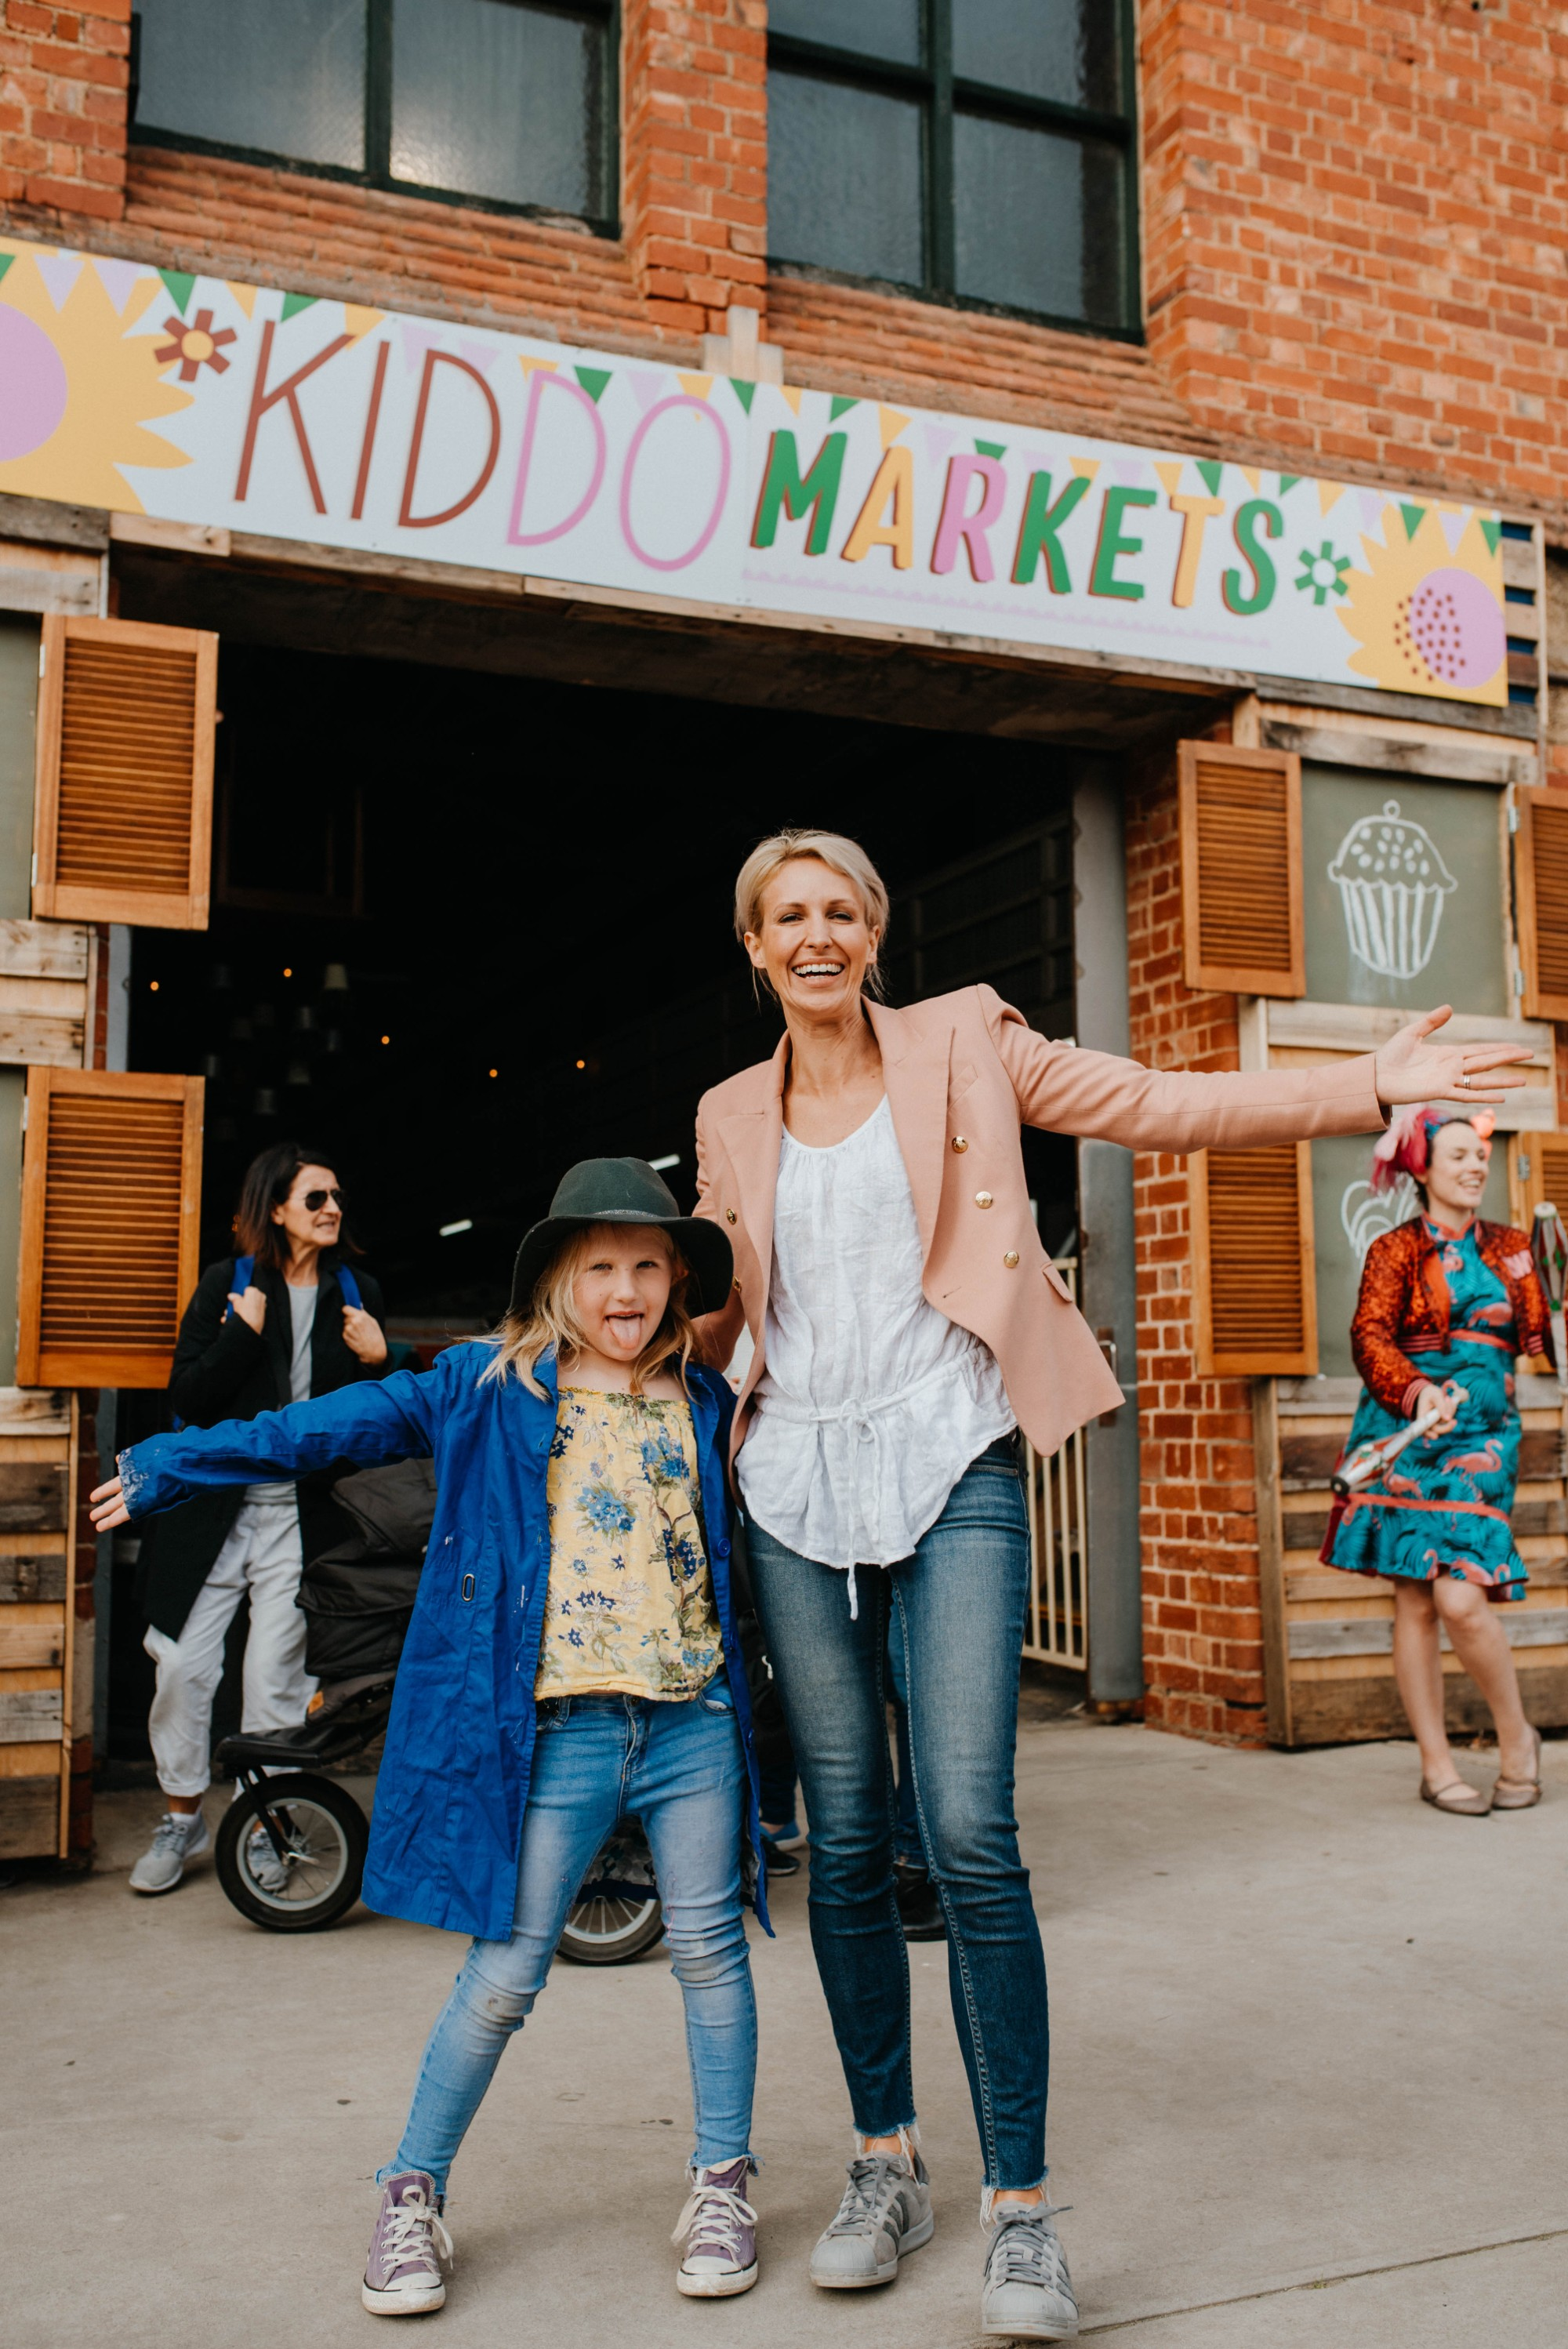 KIDDO MARKETS ARE BACK… BIGGER AND MORE FUN THAN EVER!